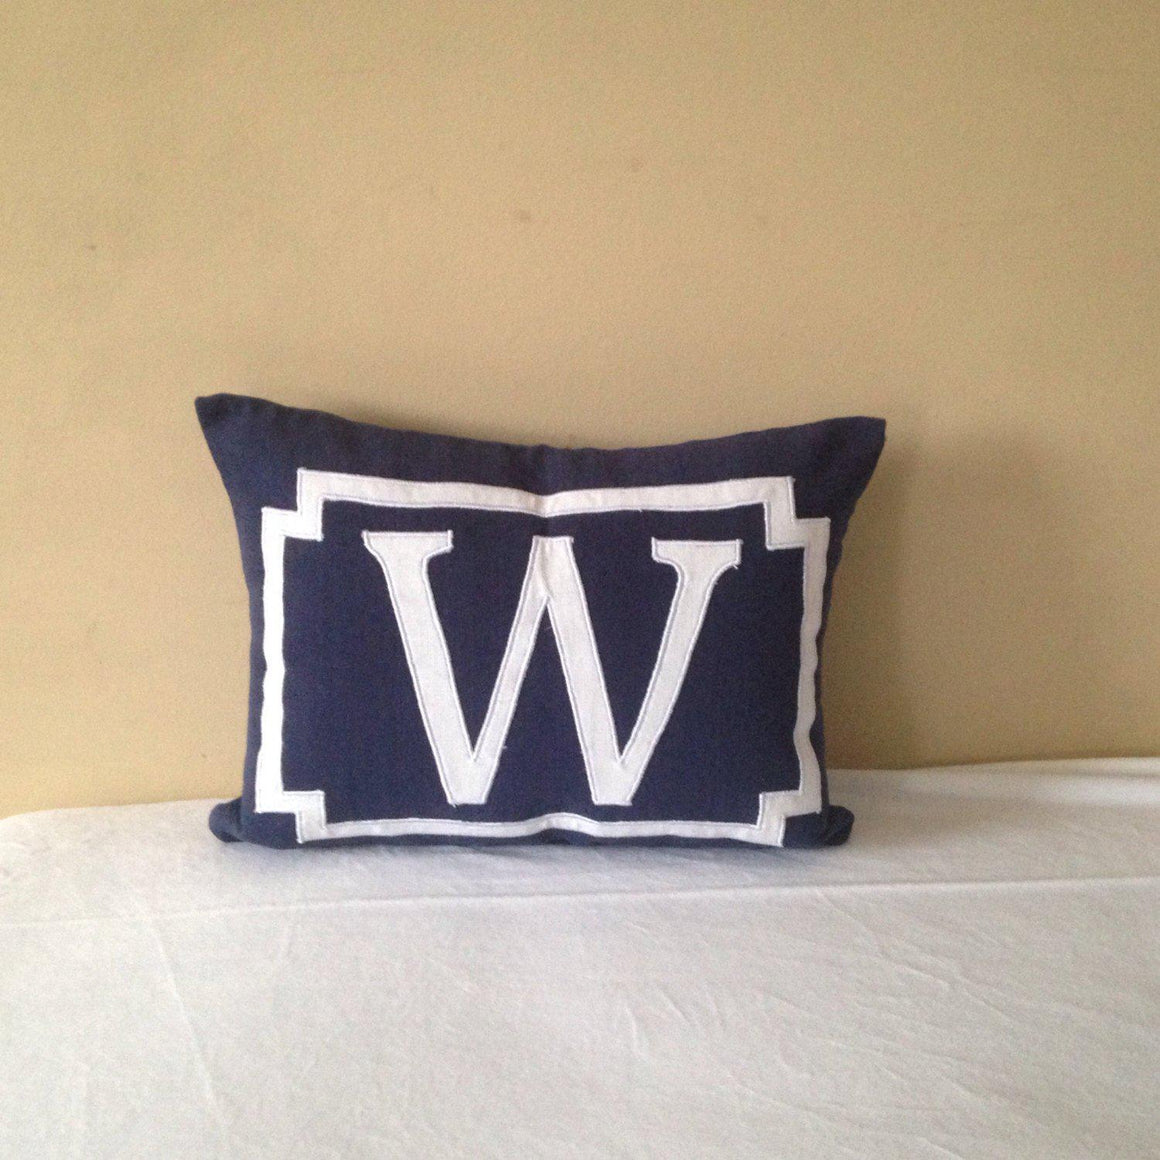 Personalized pillowcases for kids, Monogram pillows for kids, LUmbar Monogram pillow cover, Custom monogram pillow cover